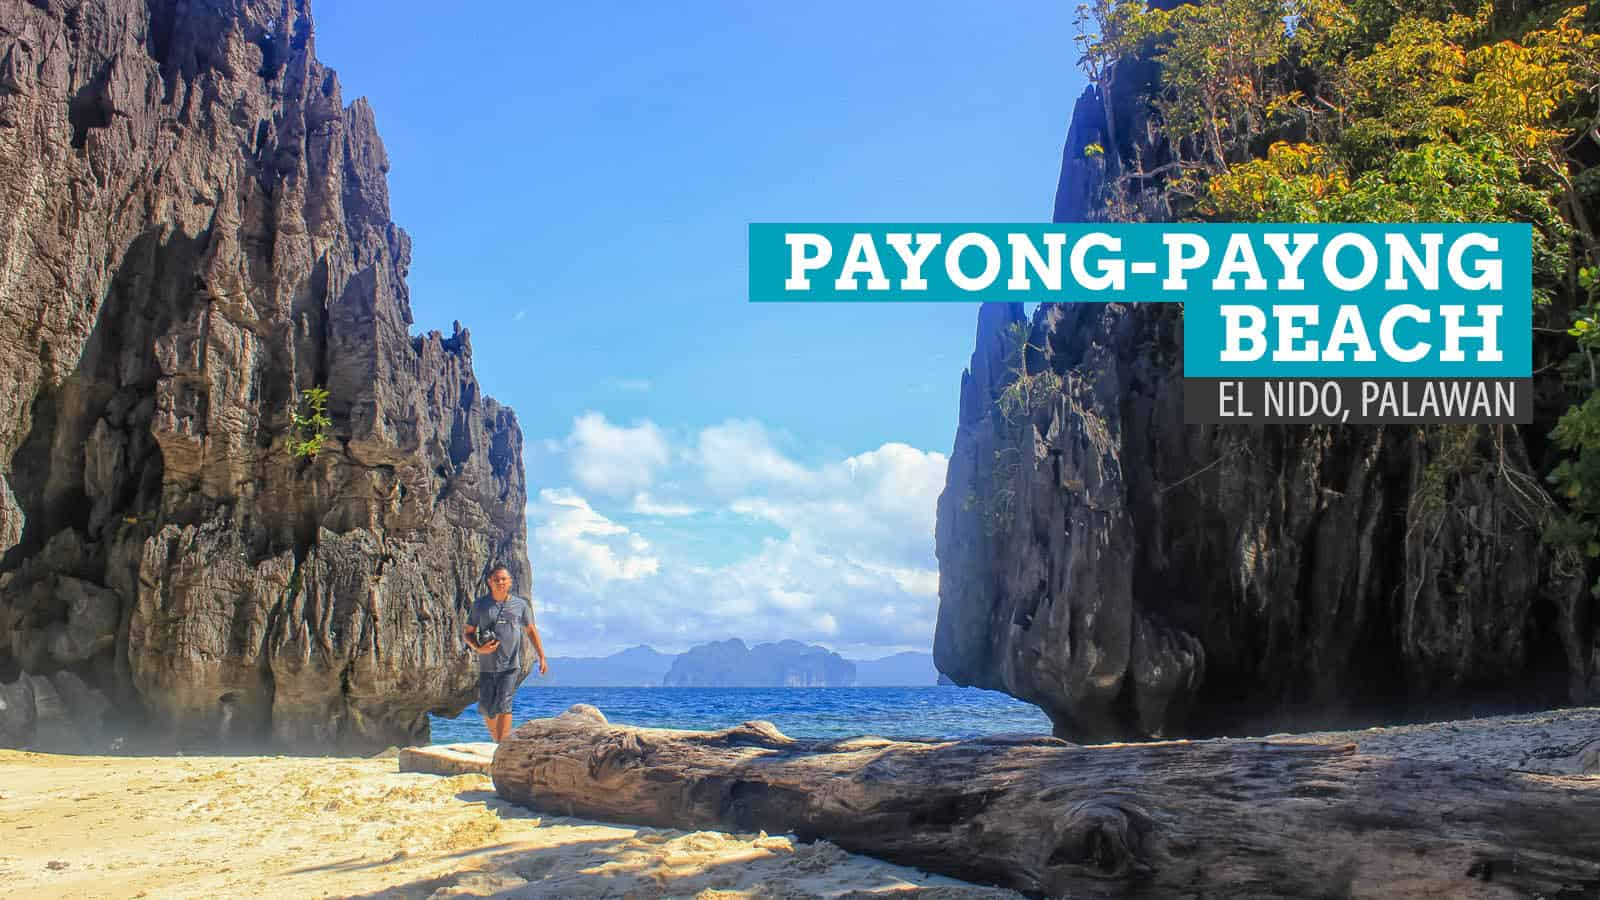 El Nido, Palawan: Making Friends at Payong-Payong Beach